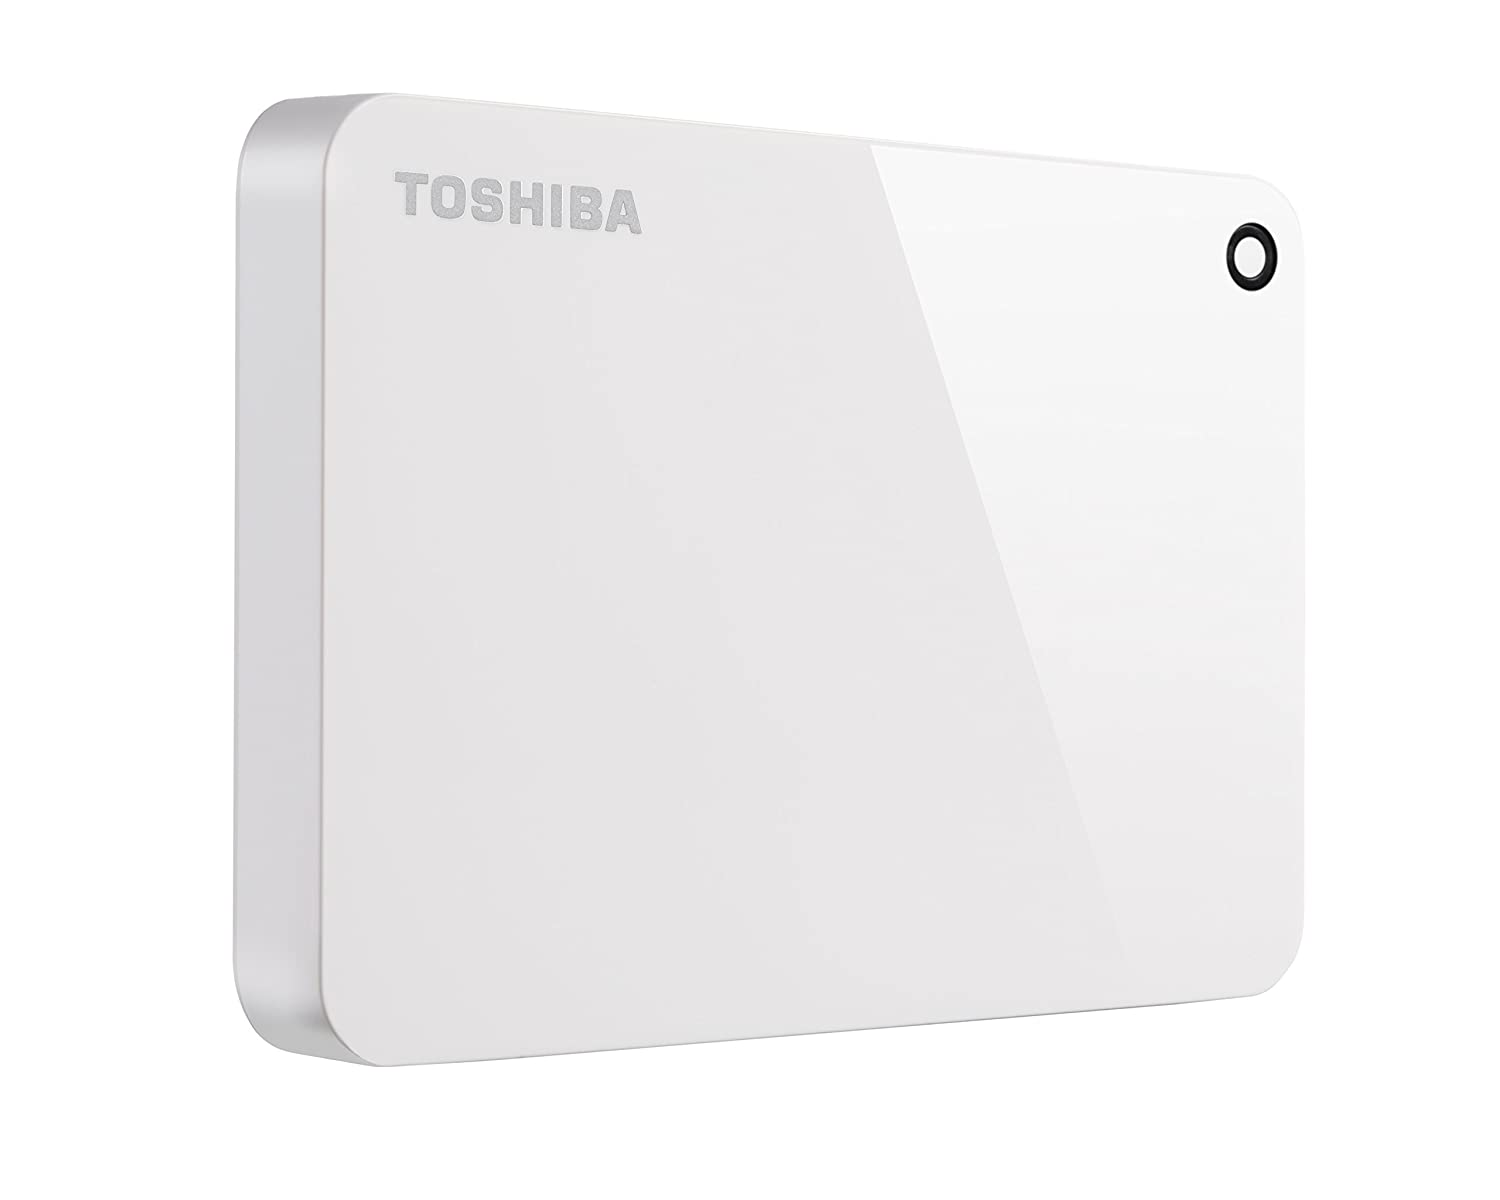 Toshiba HDTC920XW3AA Canvio Advance 2TB Portable External Hard Drive USB 3.0, White